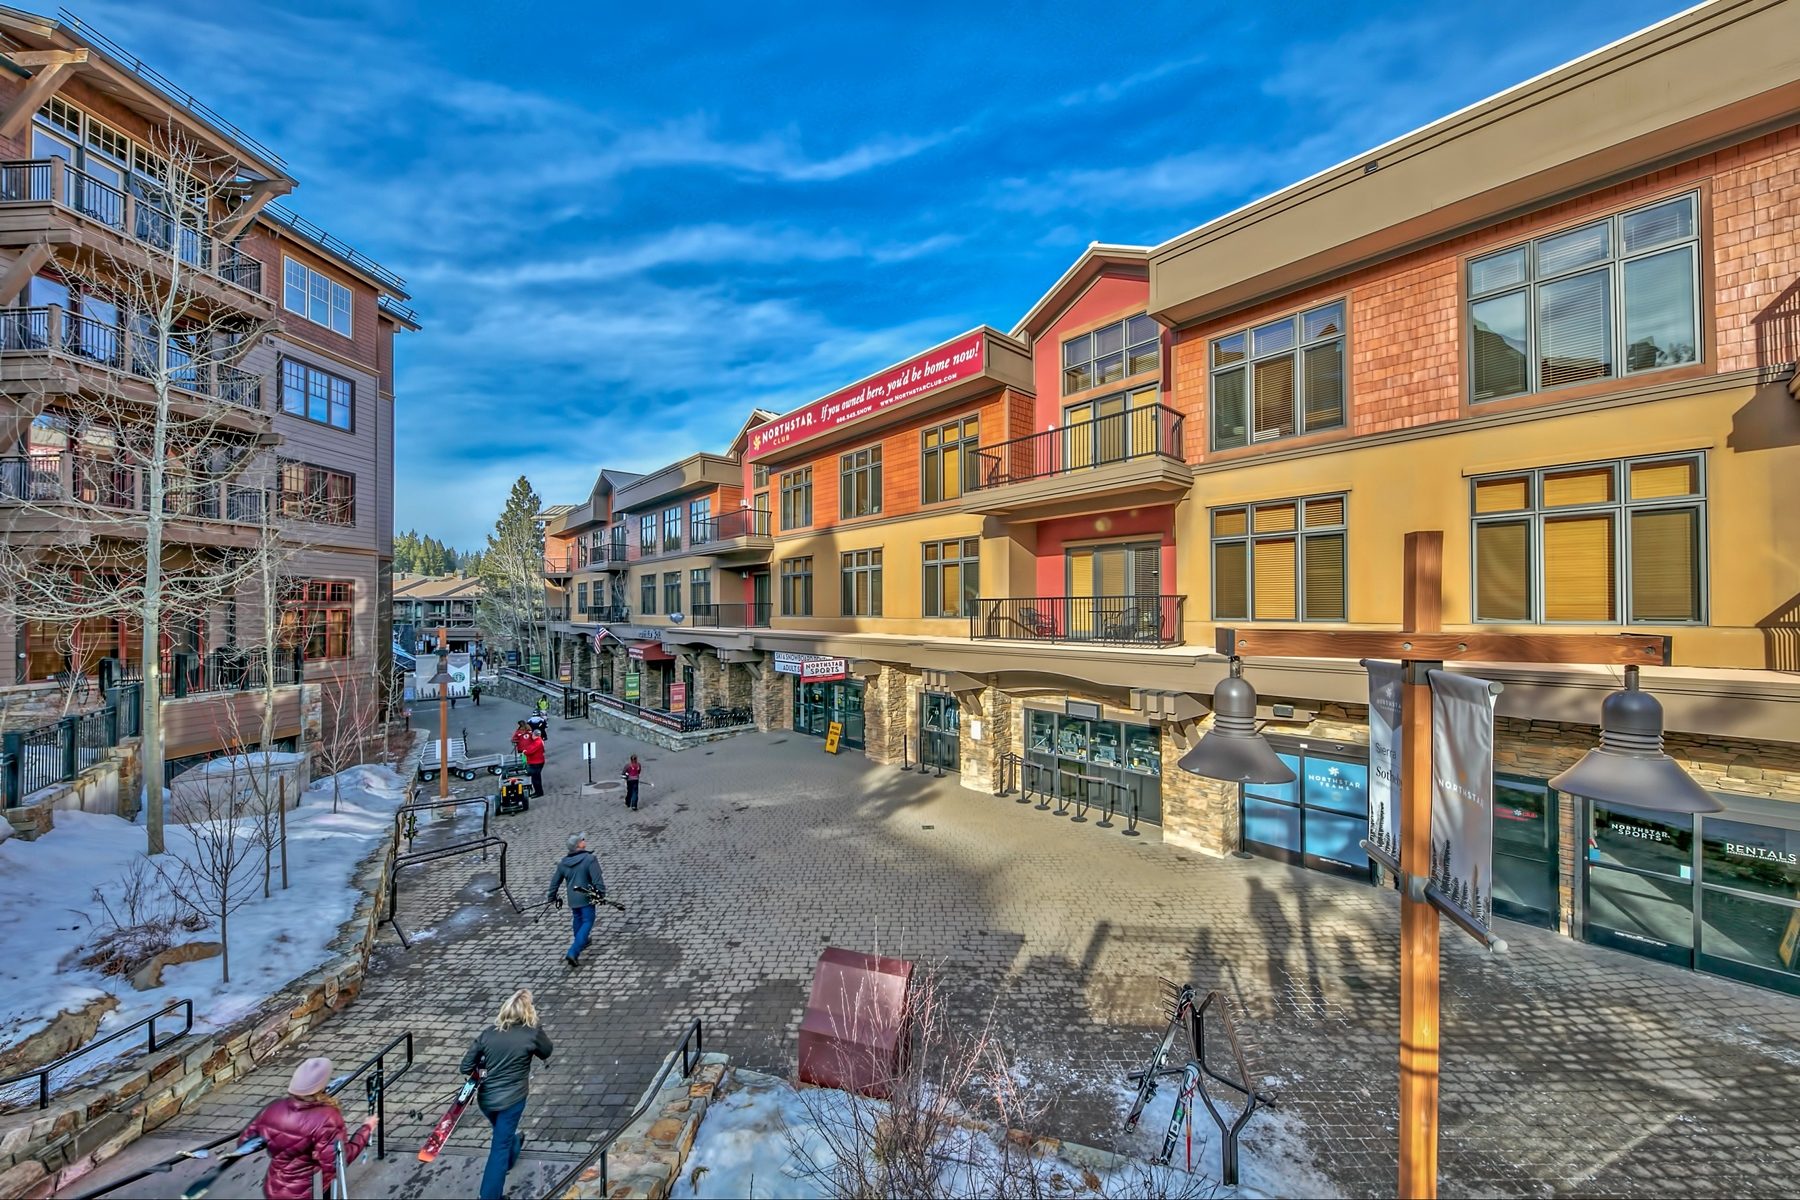 Fractional Ownership for Active at 2100 North Village Drive Unit# 406/#18, N4-31, Truckee, CA 96161 2100 North Village Drive Unit# 406/#18, N4-31 Truckee, California 96161 United States